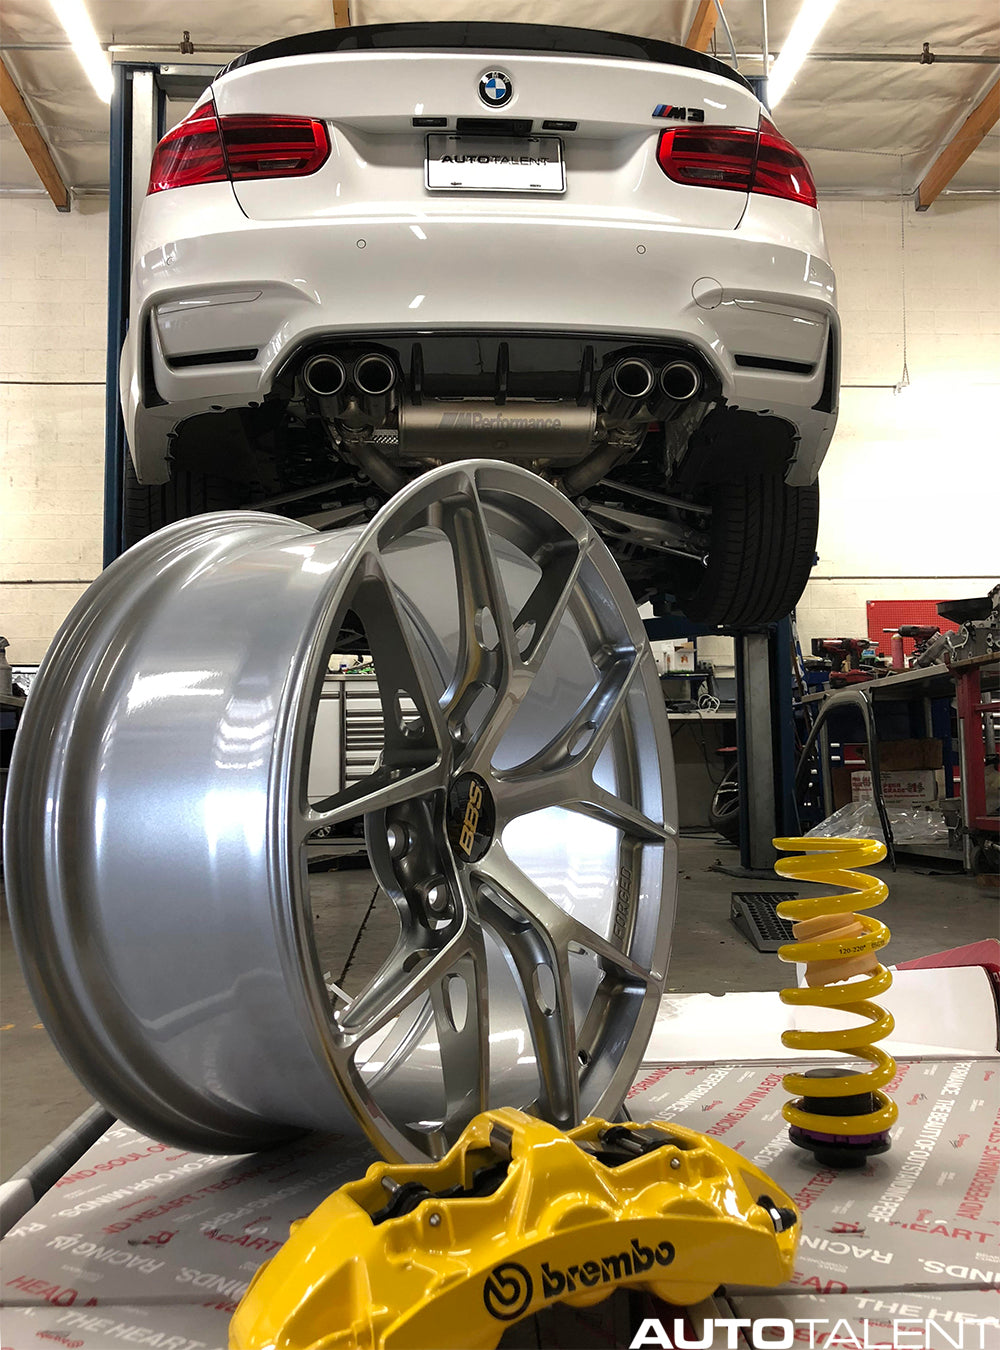 BMW F80 M3 BBS FIR FI-R Brembo Big Brake Kit BBK KW HAS H.A.S.